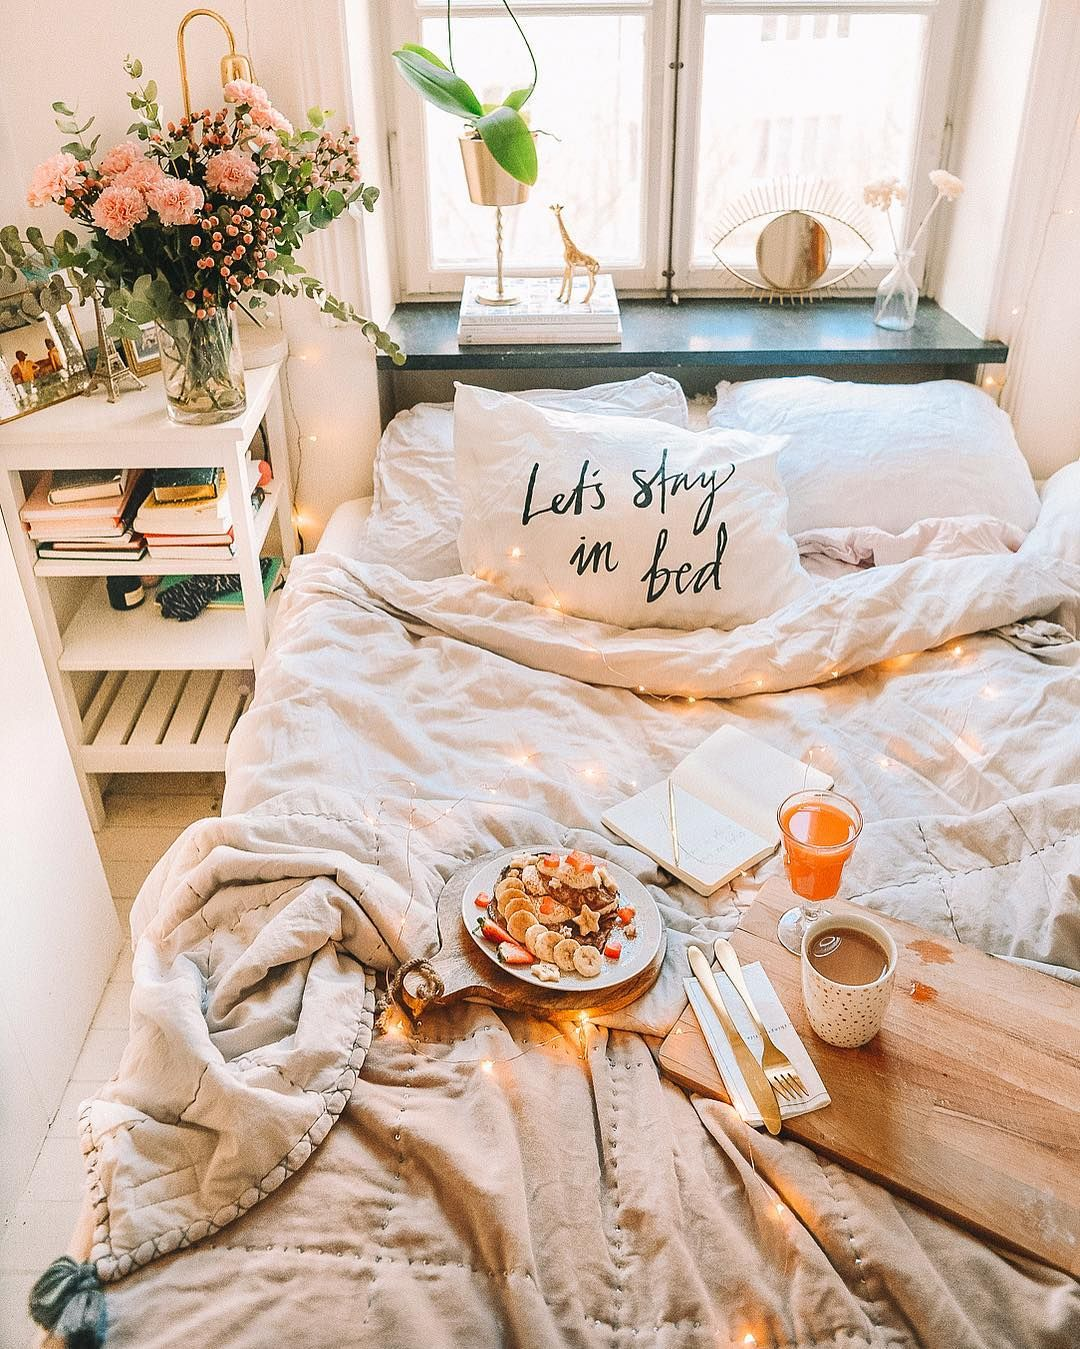 Josefin dahlberg on instagram  cmy weekend plans stay in bed hang out with friends do yoga eat amazing food and feeling the magic vibes you   also best home decor images bedroom inspo mint bedrooms rh pinterest